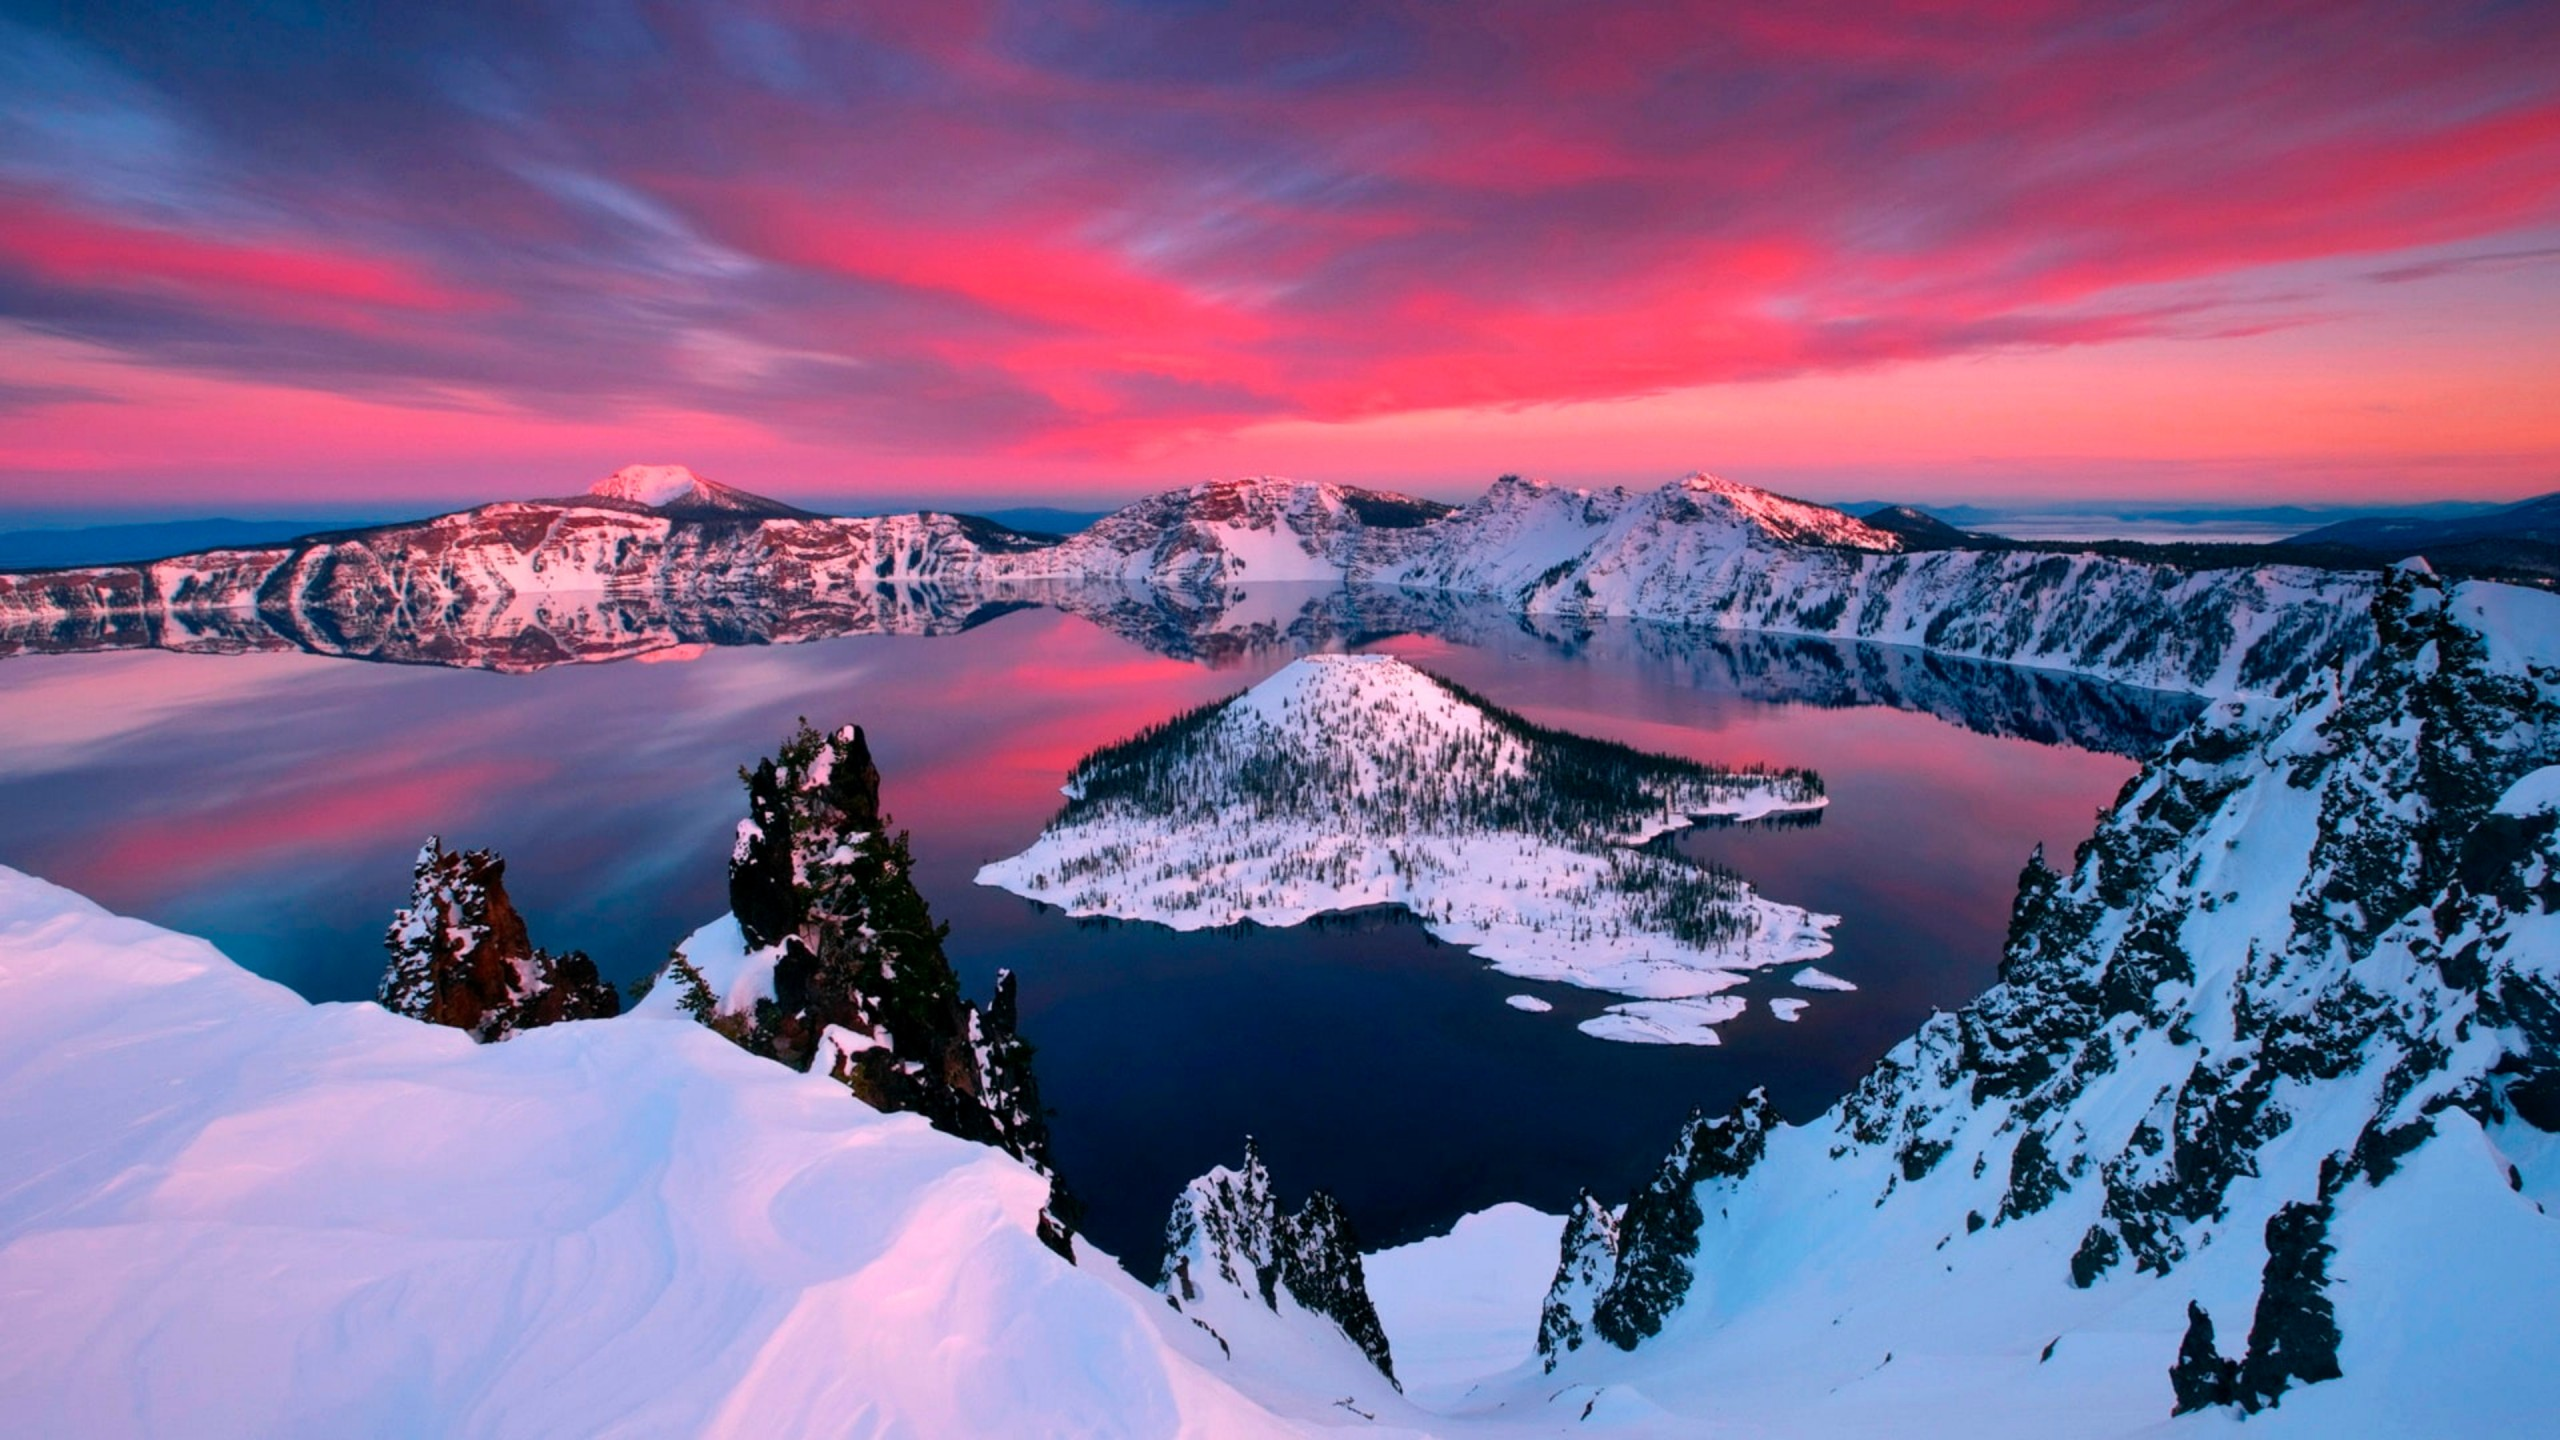 Wallpaper Mountains in lake with snow